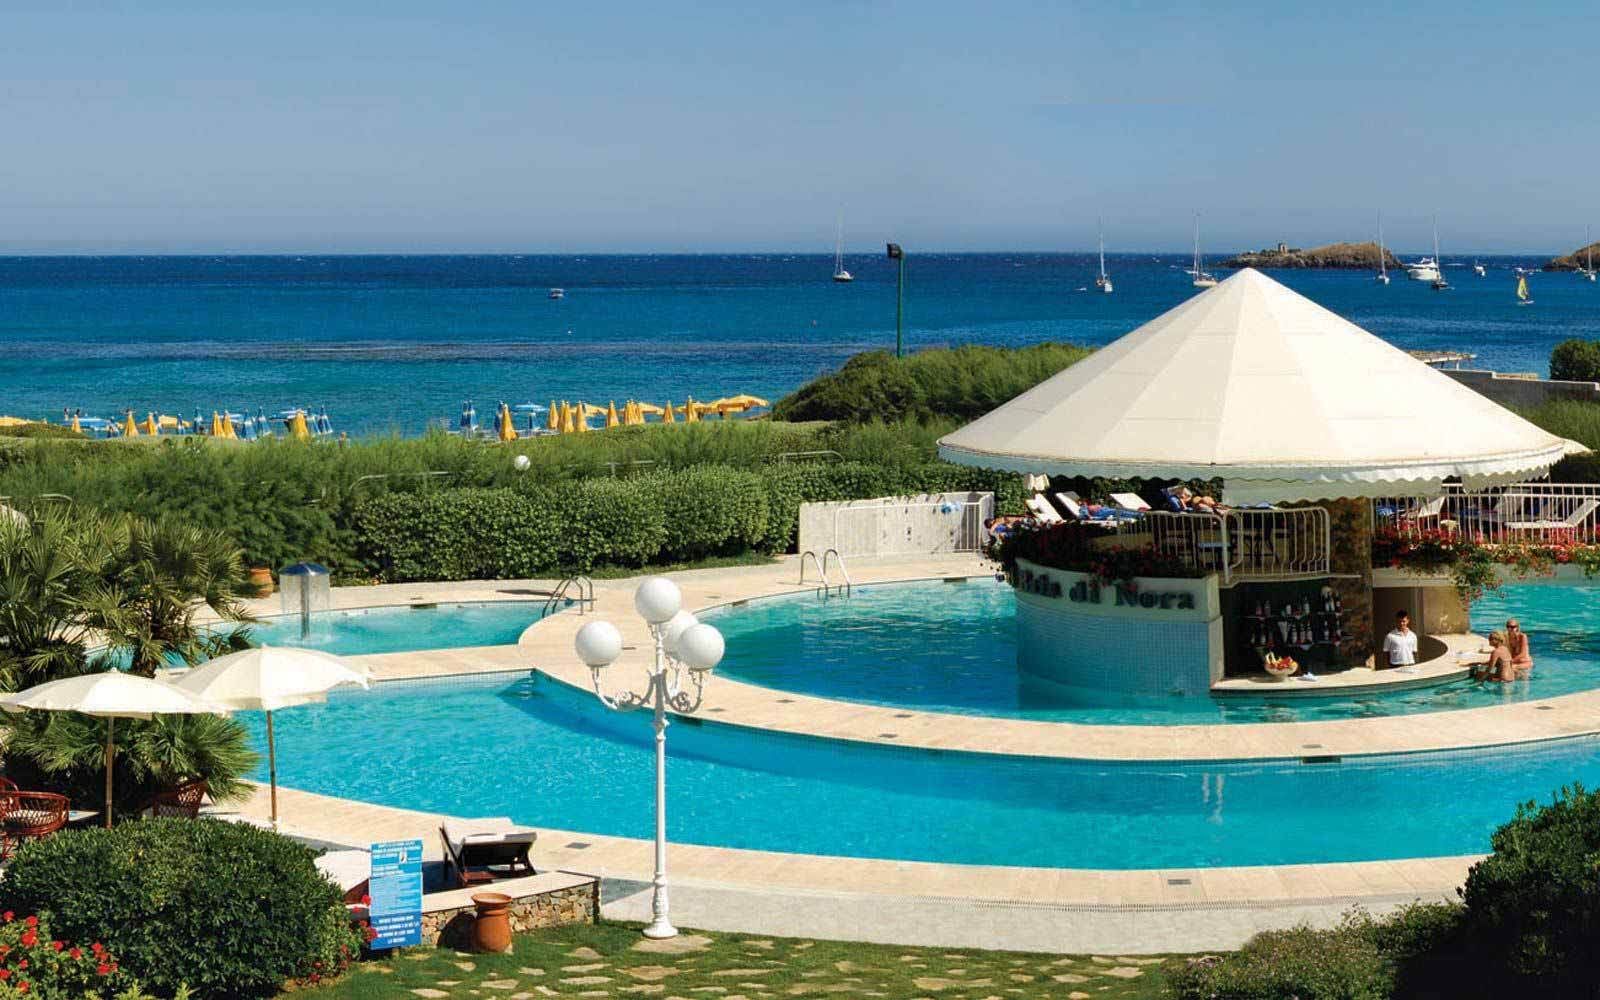 The pool at Hotel Baia Di Nora